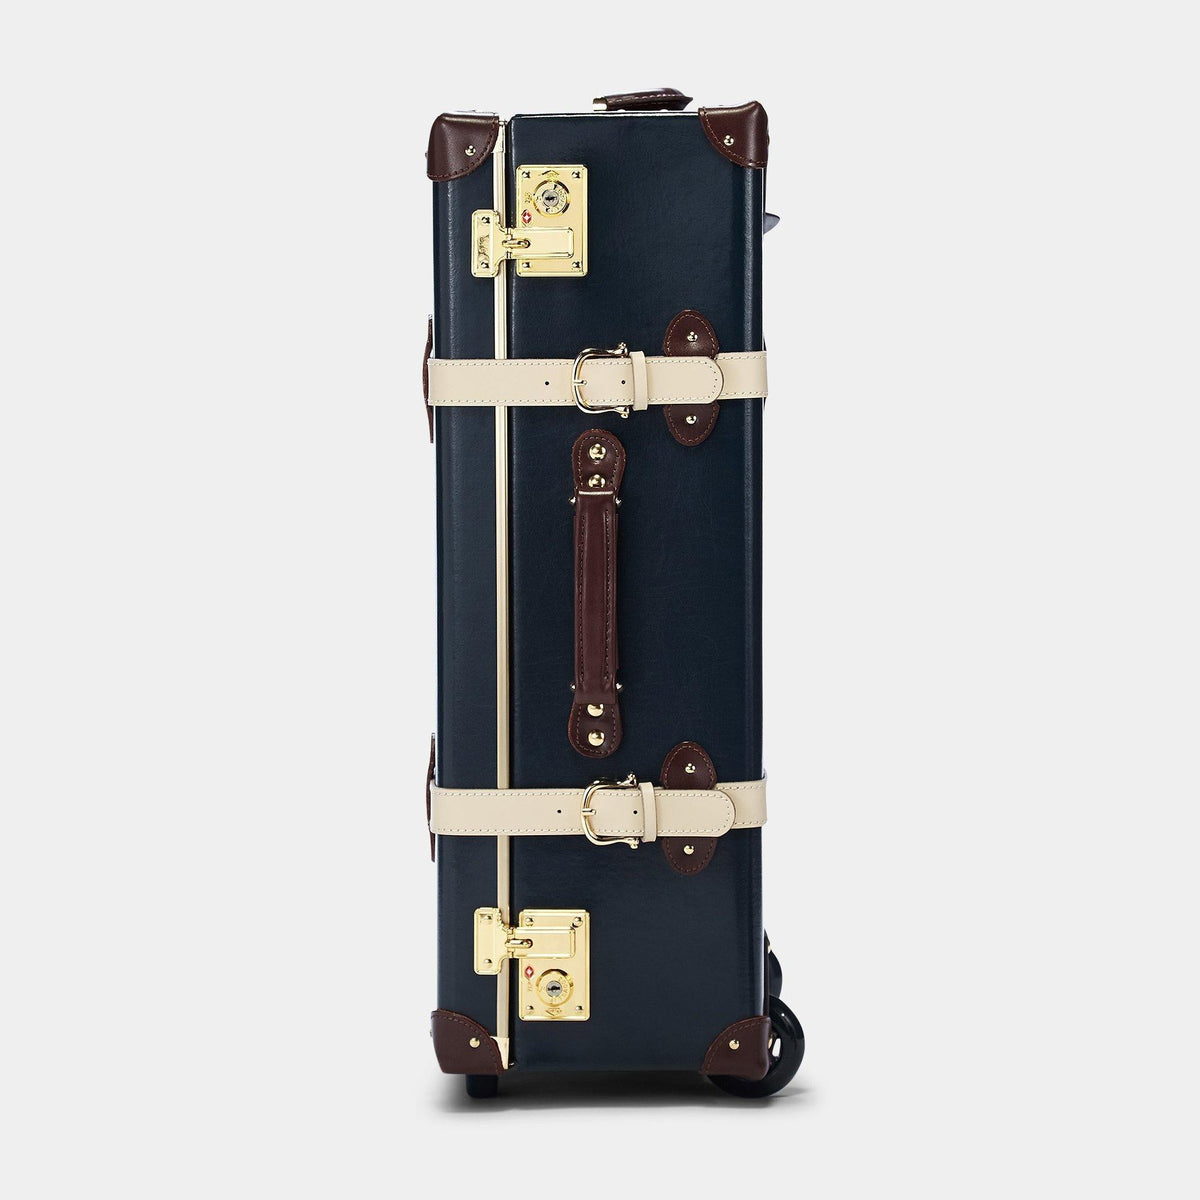 The Architect Stowaway in Navy -Vintage Style Leather Case - Exterior Side